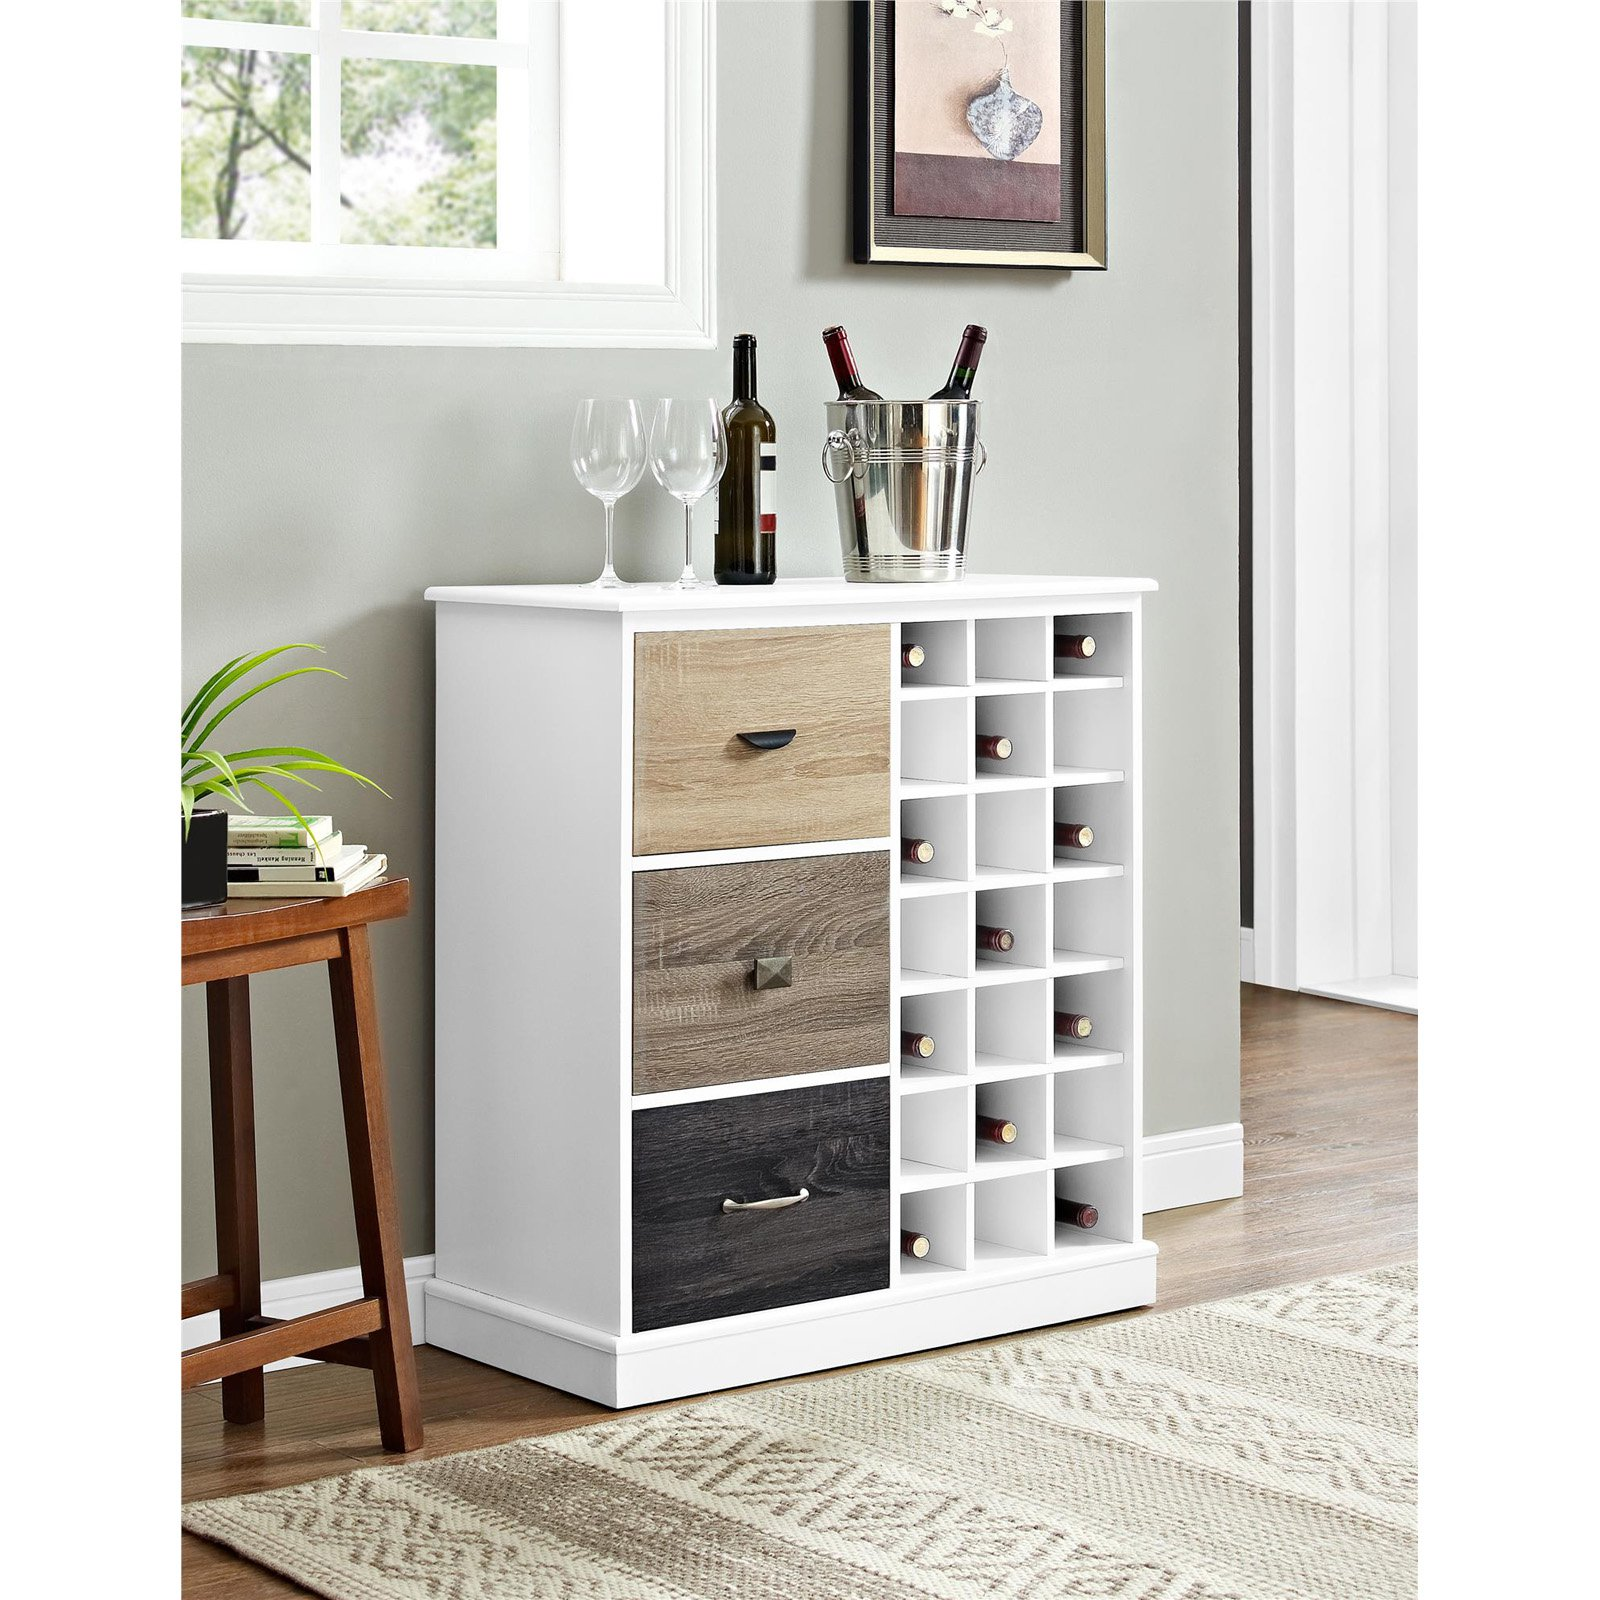 Ameriwood Home Mercer Wine Cabinet with Multicolored Door Fronts, White by Ameriwood